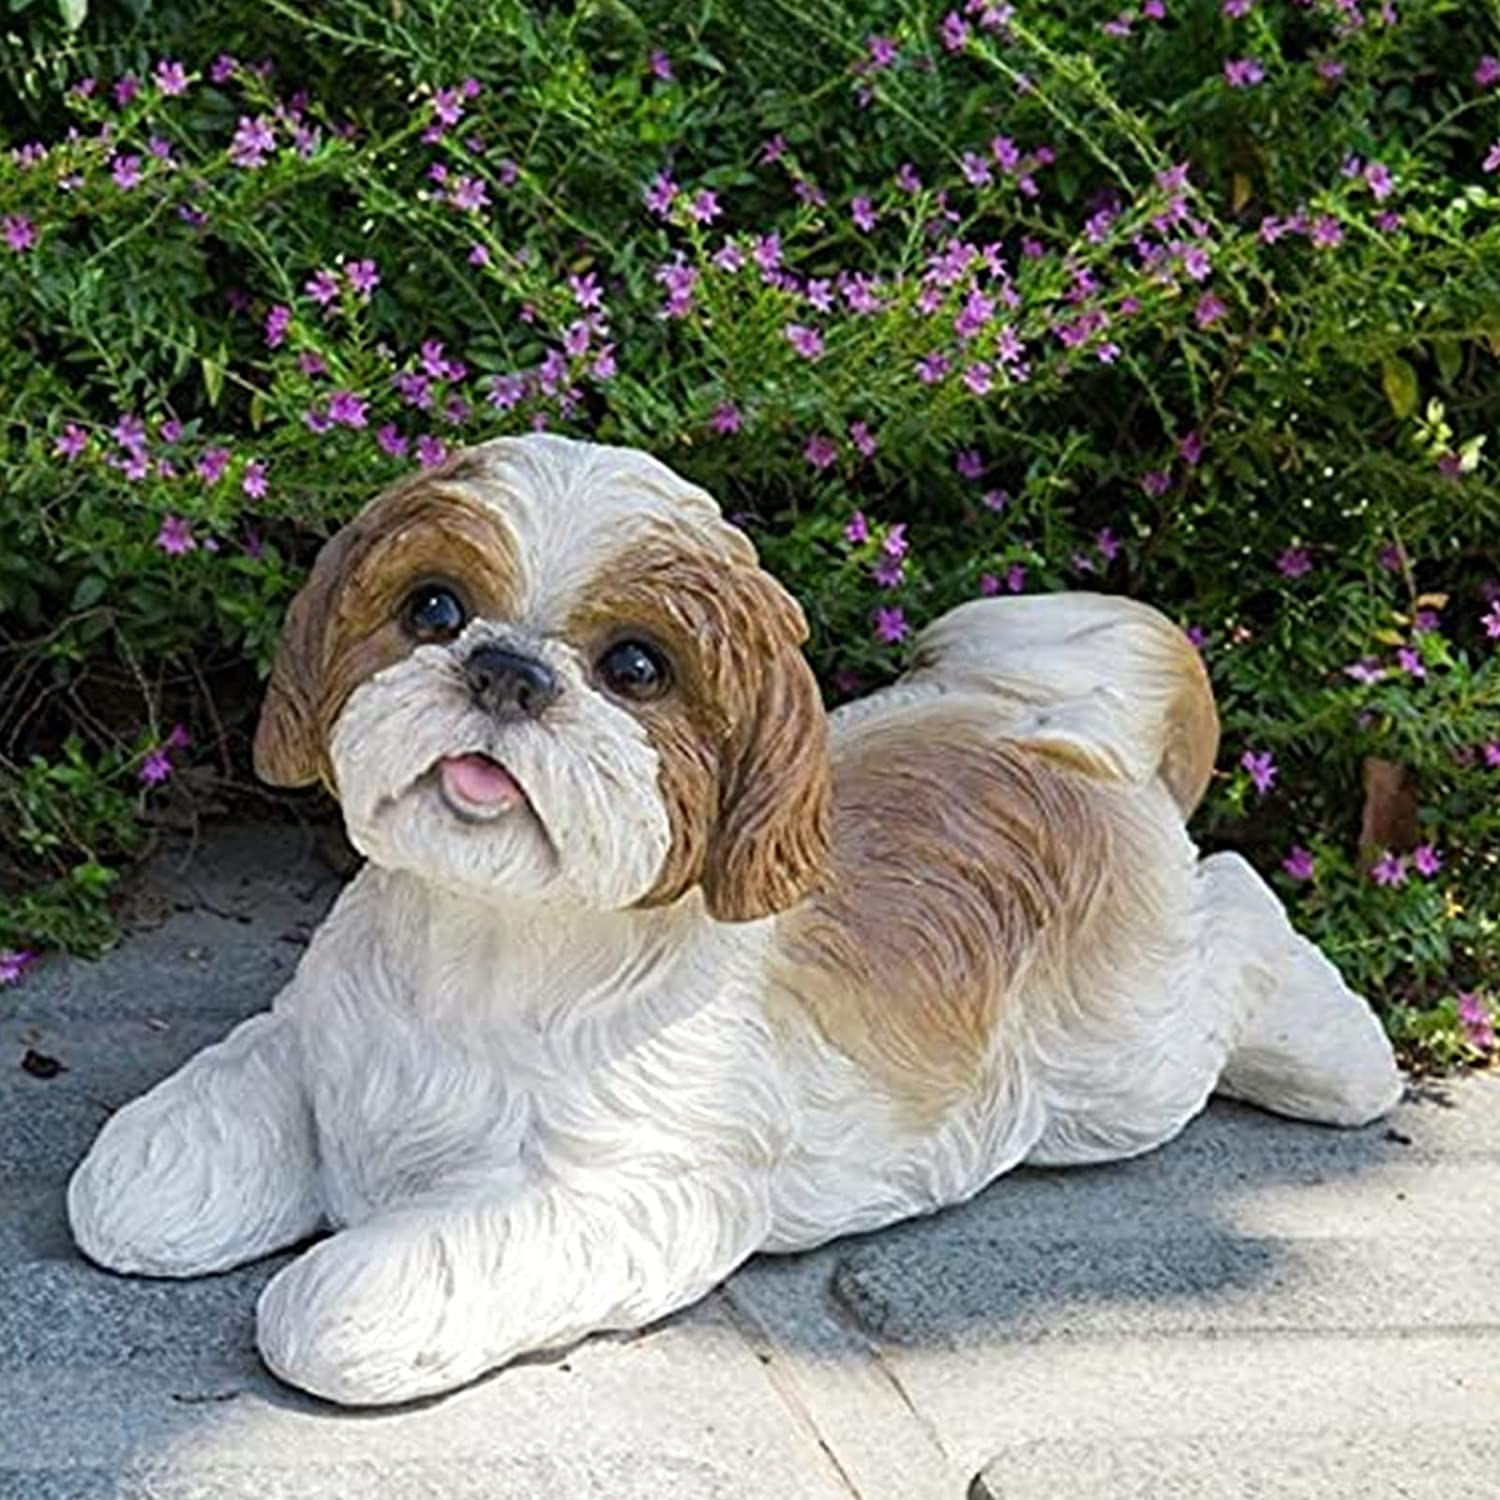 Shih Tzu Lying Down Dog Statue Decor, Memorial Dog Figurines Landscape Ornament, Table Centerpiece Gift for Dog Lovers, Fantasy Fans, Dog Decorations for Home, Patio, Lawn, Outdoors (D)